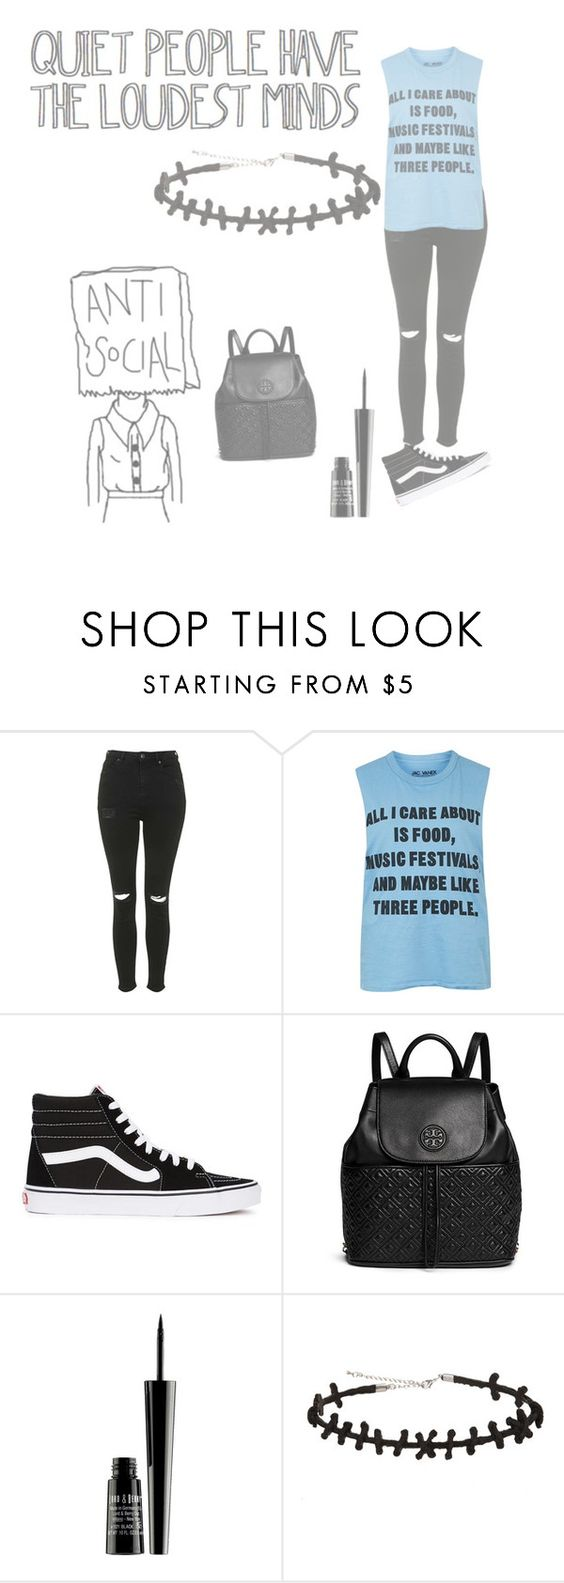 """""""Quiet People Have The Loudest Minds"""" by meganalvira ❤ liked on Polyvore featuring Topshop, Vans, Tory Burch and Lord & Berry"""